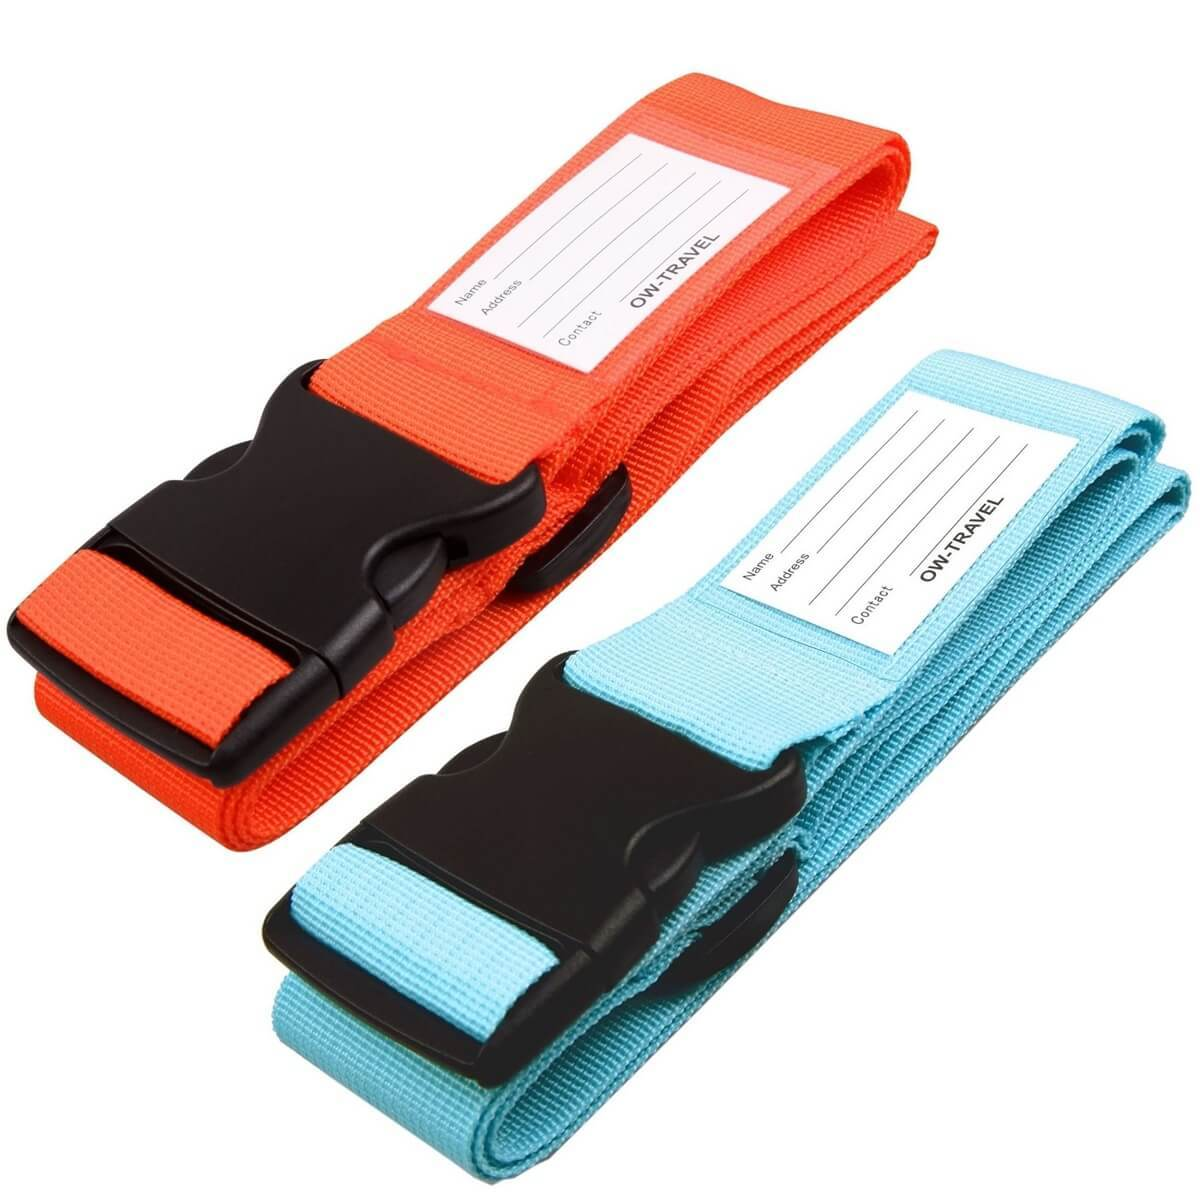 ✅ Heavy Duty Luggage Strap Suitcase Belts - with Personalised Baggage Claim Identifier Address Label (Bright Orange + Bright Blue) - One-Wear